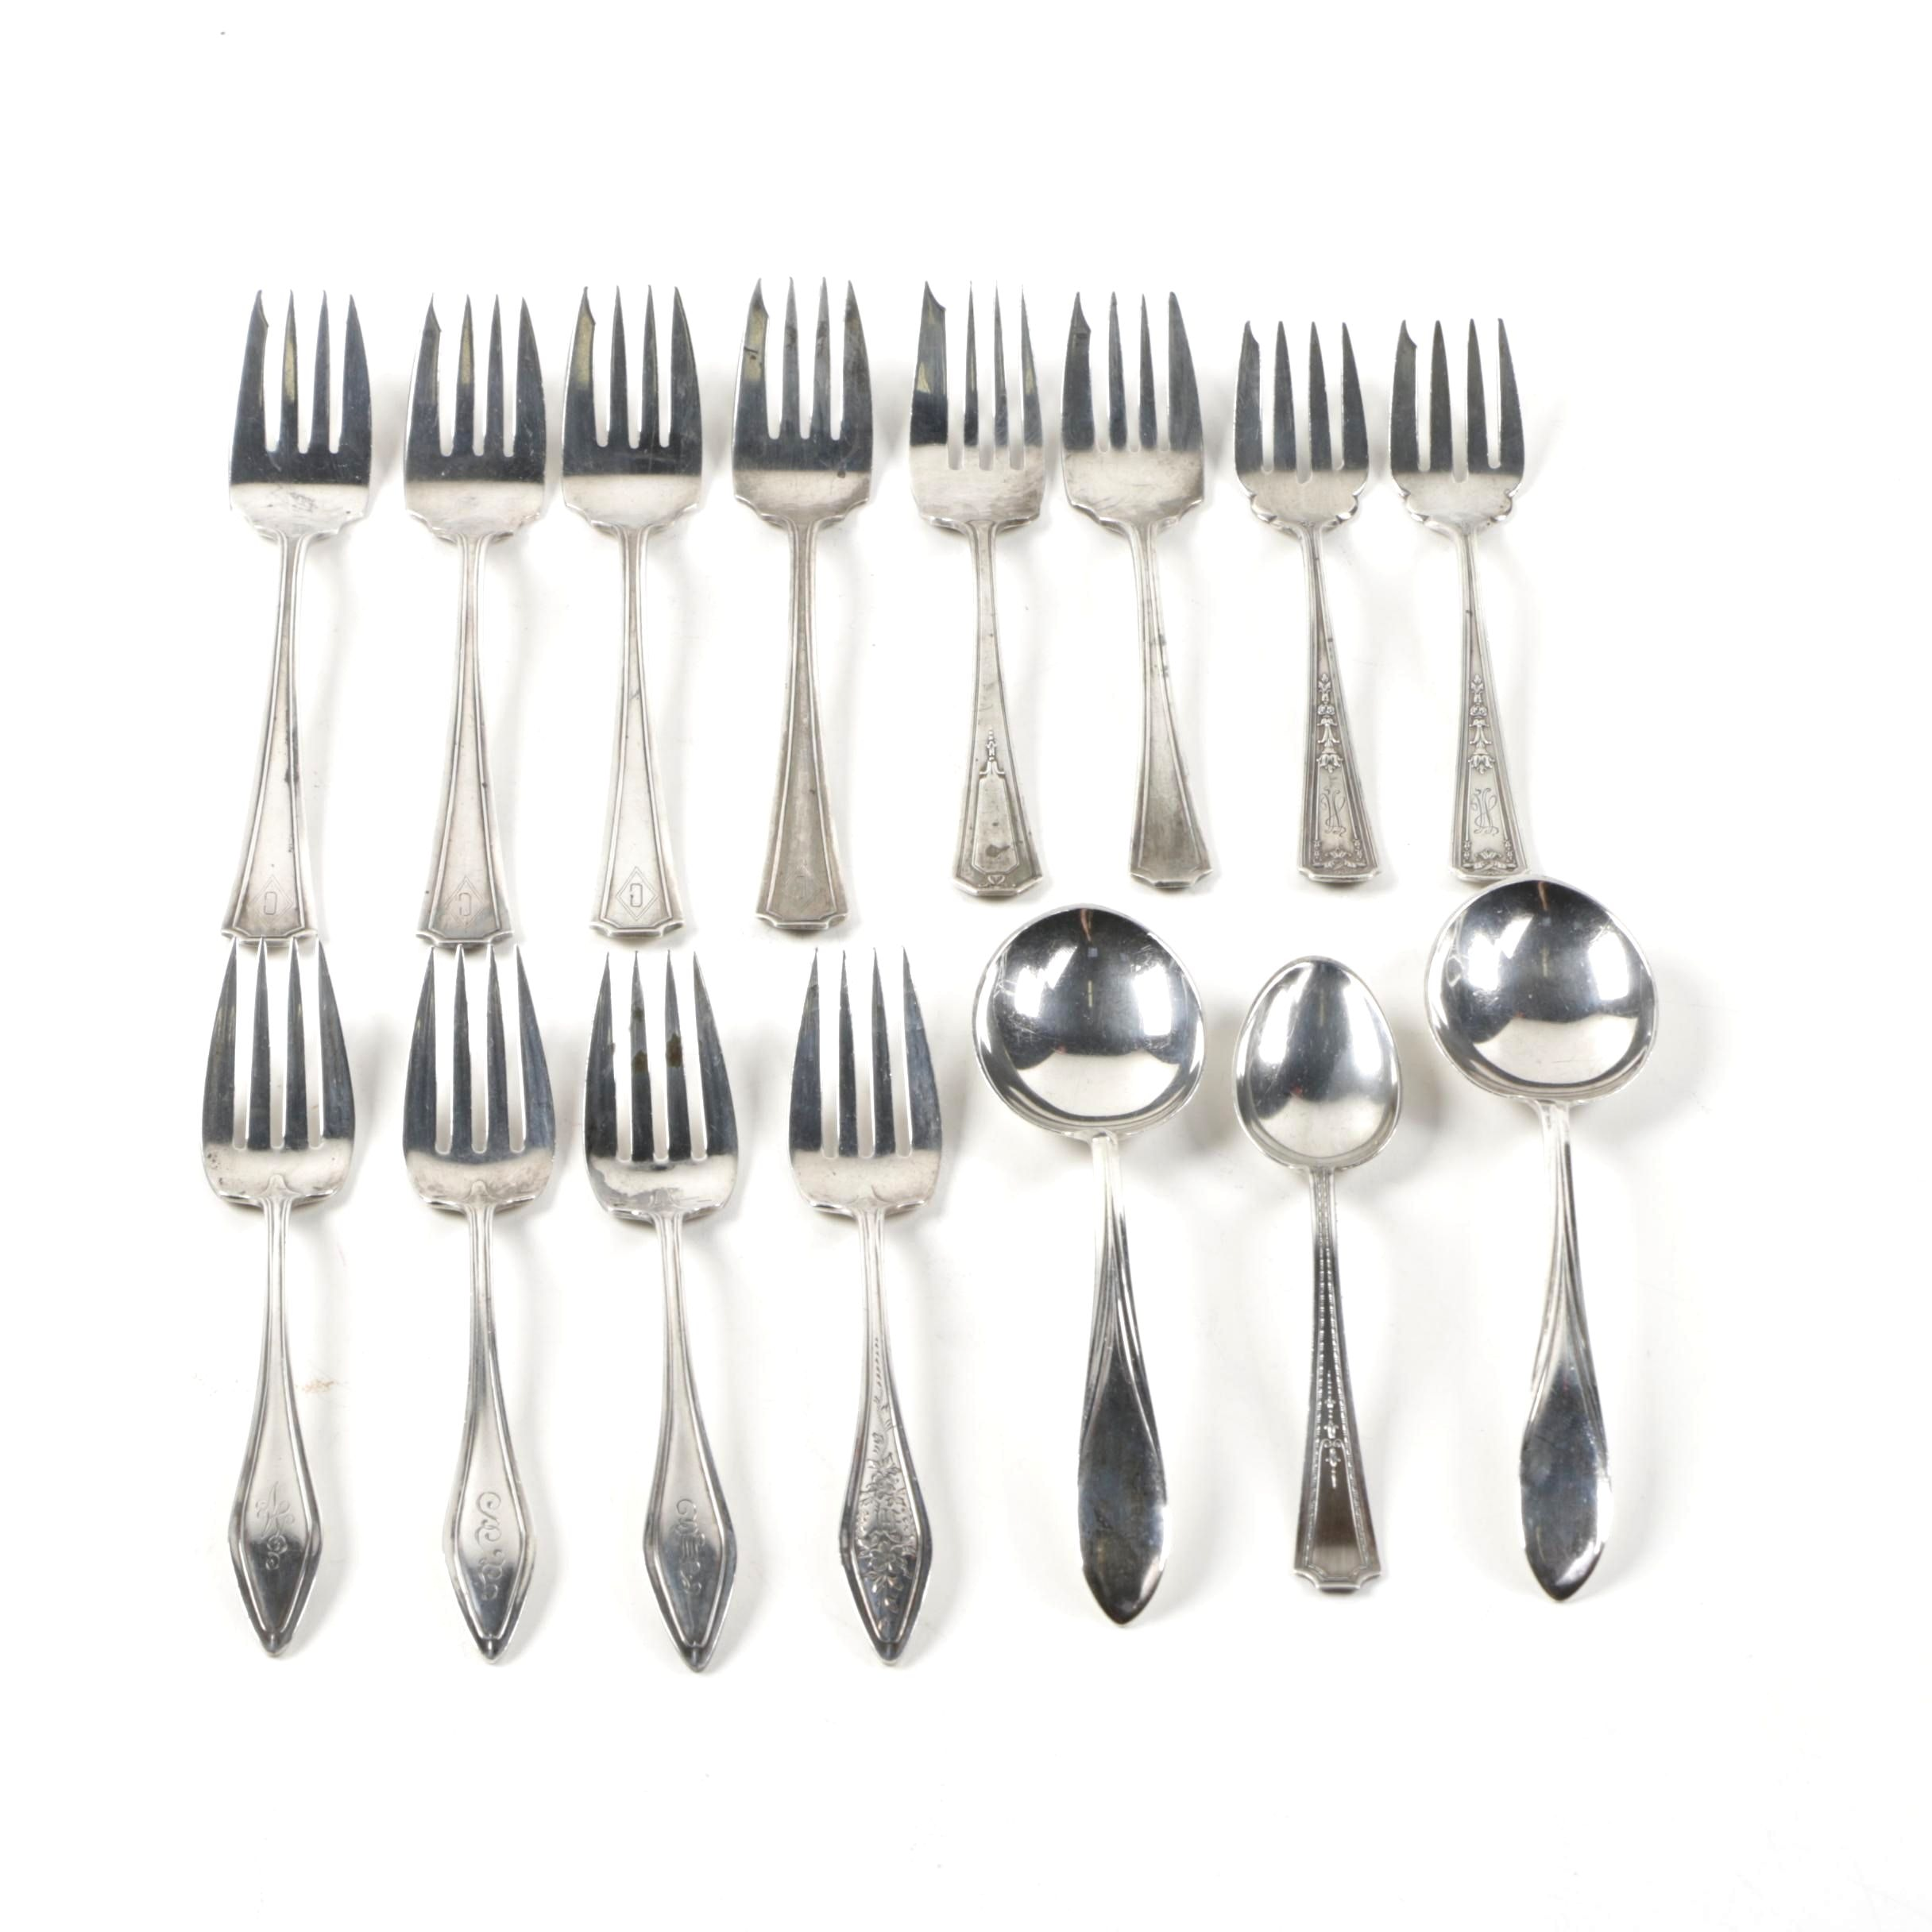 Sterling Silver Flatware Assortment